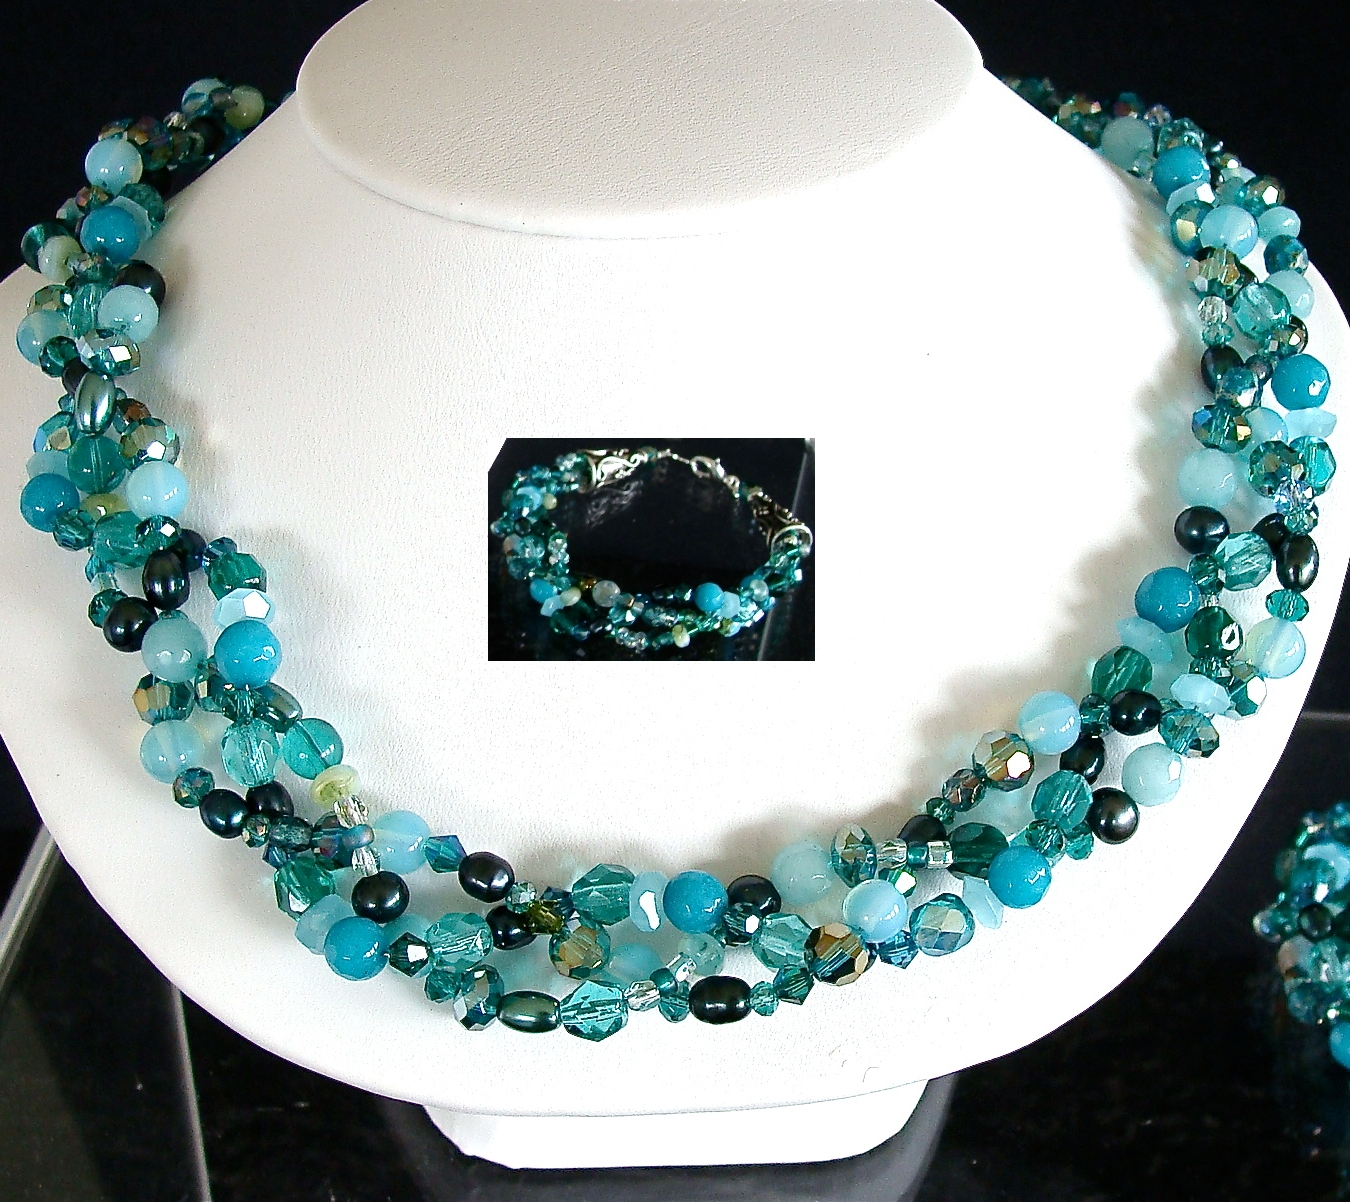 Handcrafted necklace and matching bracelet made of semi-precious gemstones, from BeadZbyRoZ